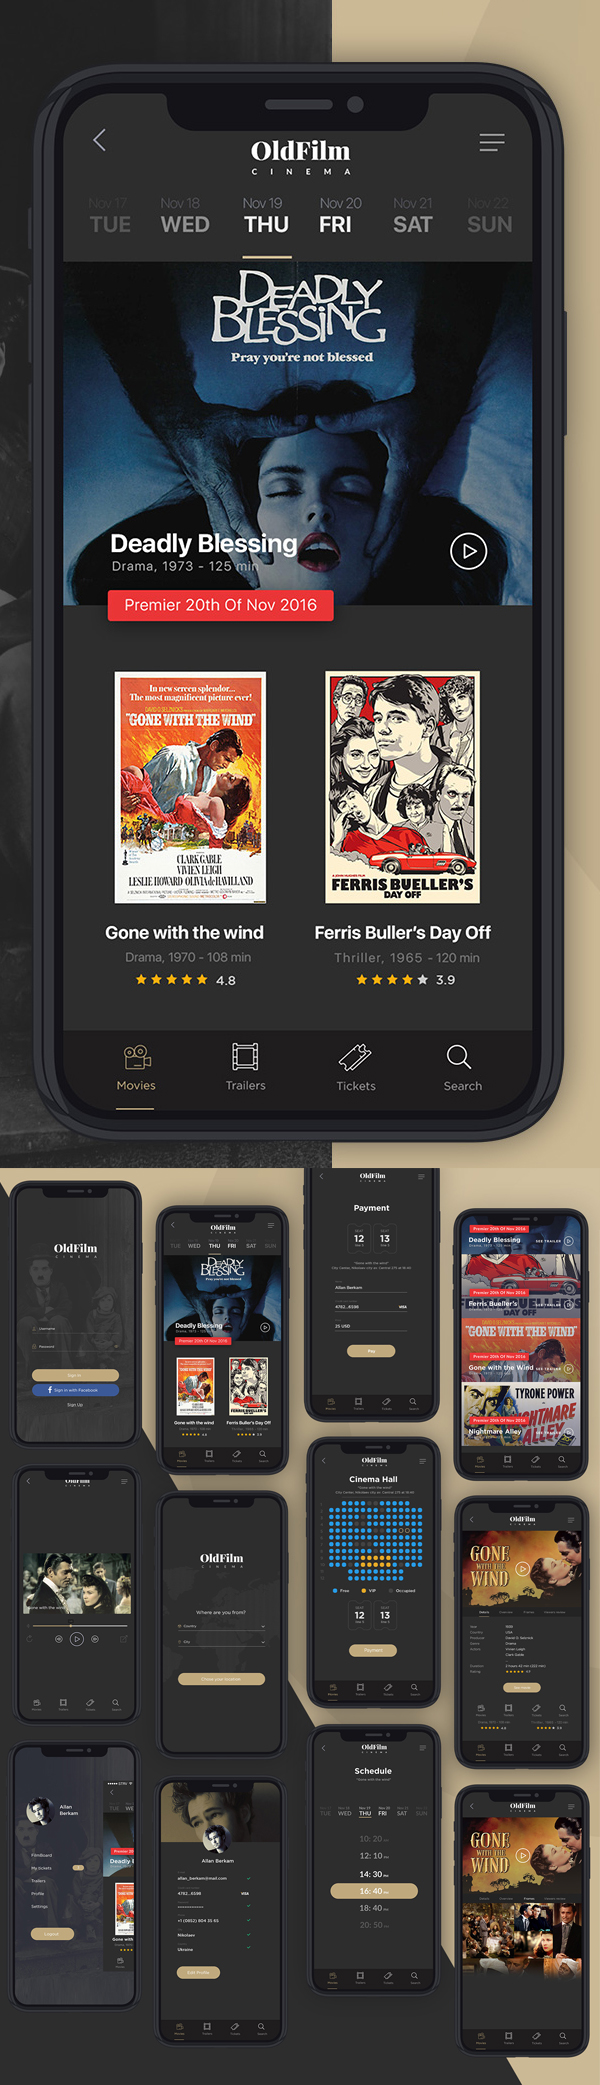 Free Cinema Mobile App Screen PSD Templates